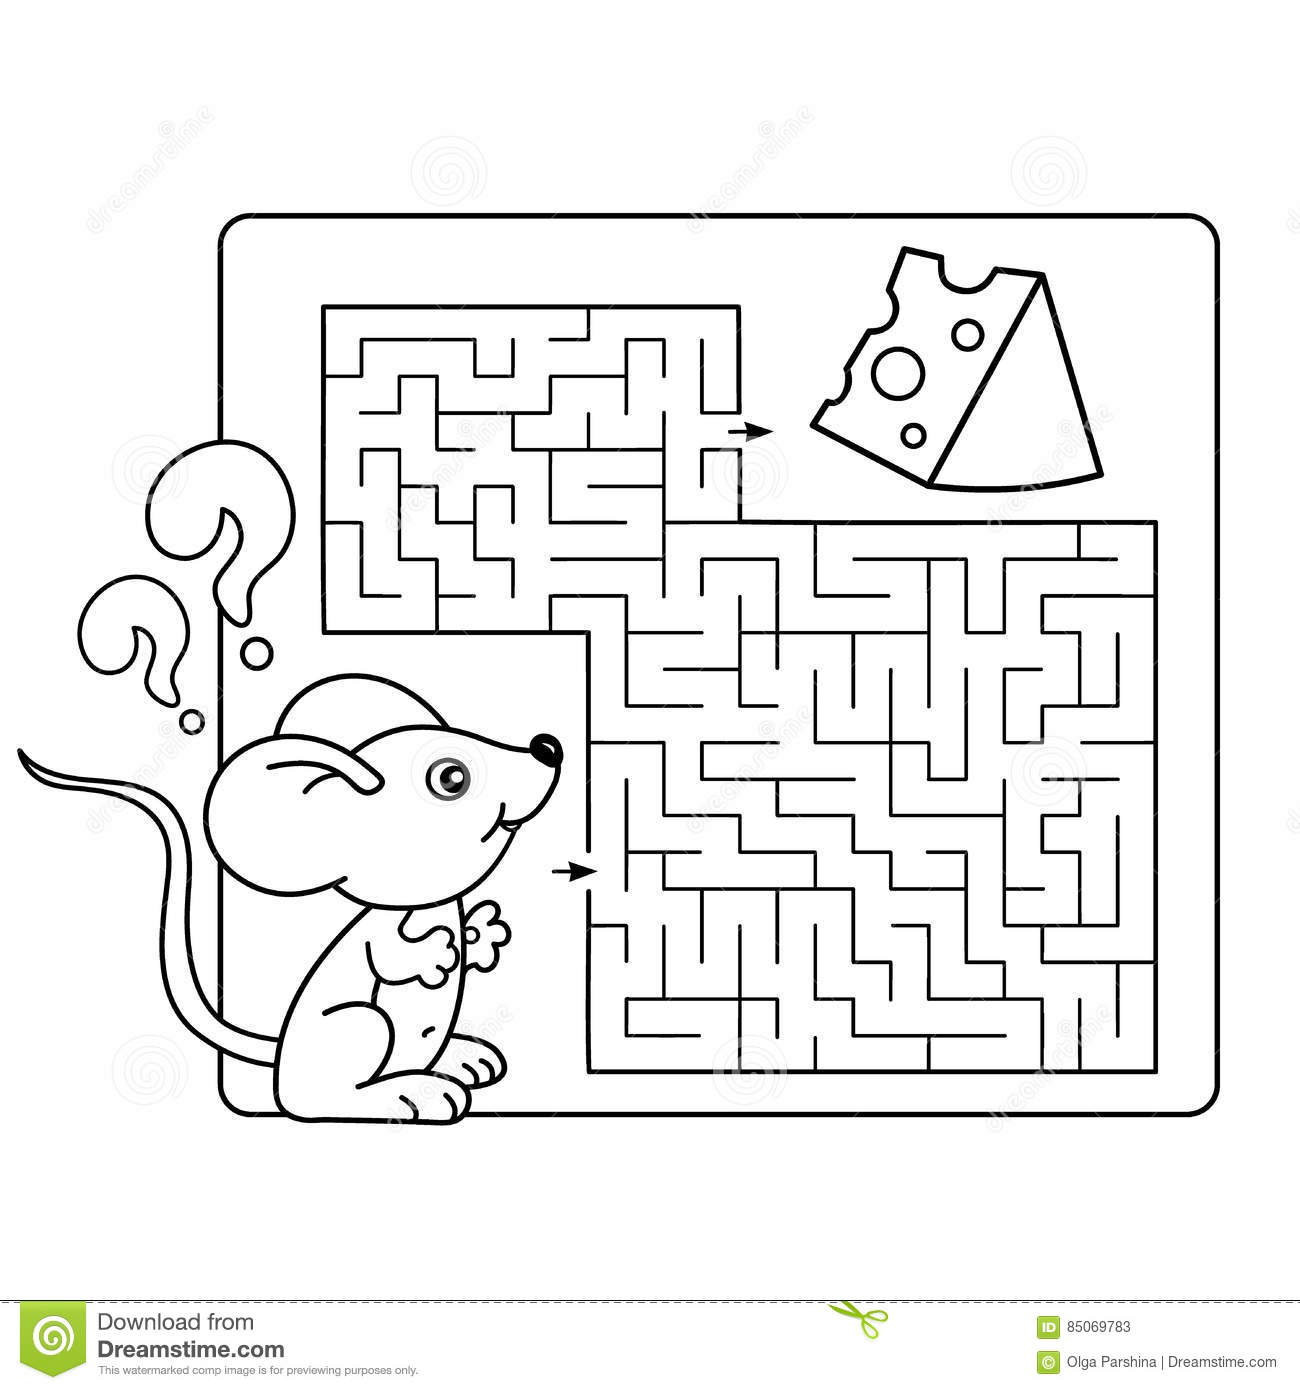 Maze Or Labyrinth Game For Preschool Children Puzzle Stock Vector